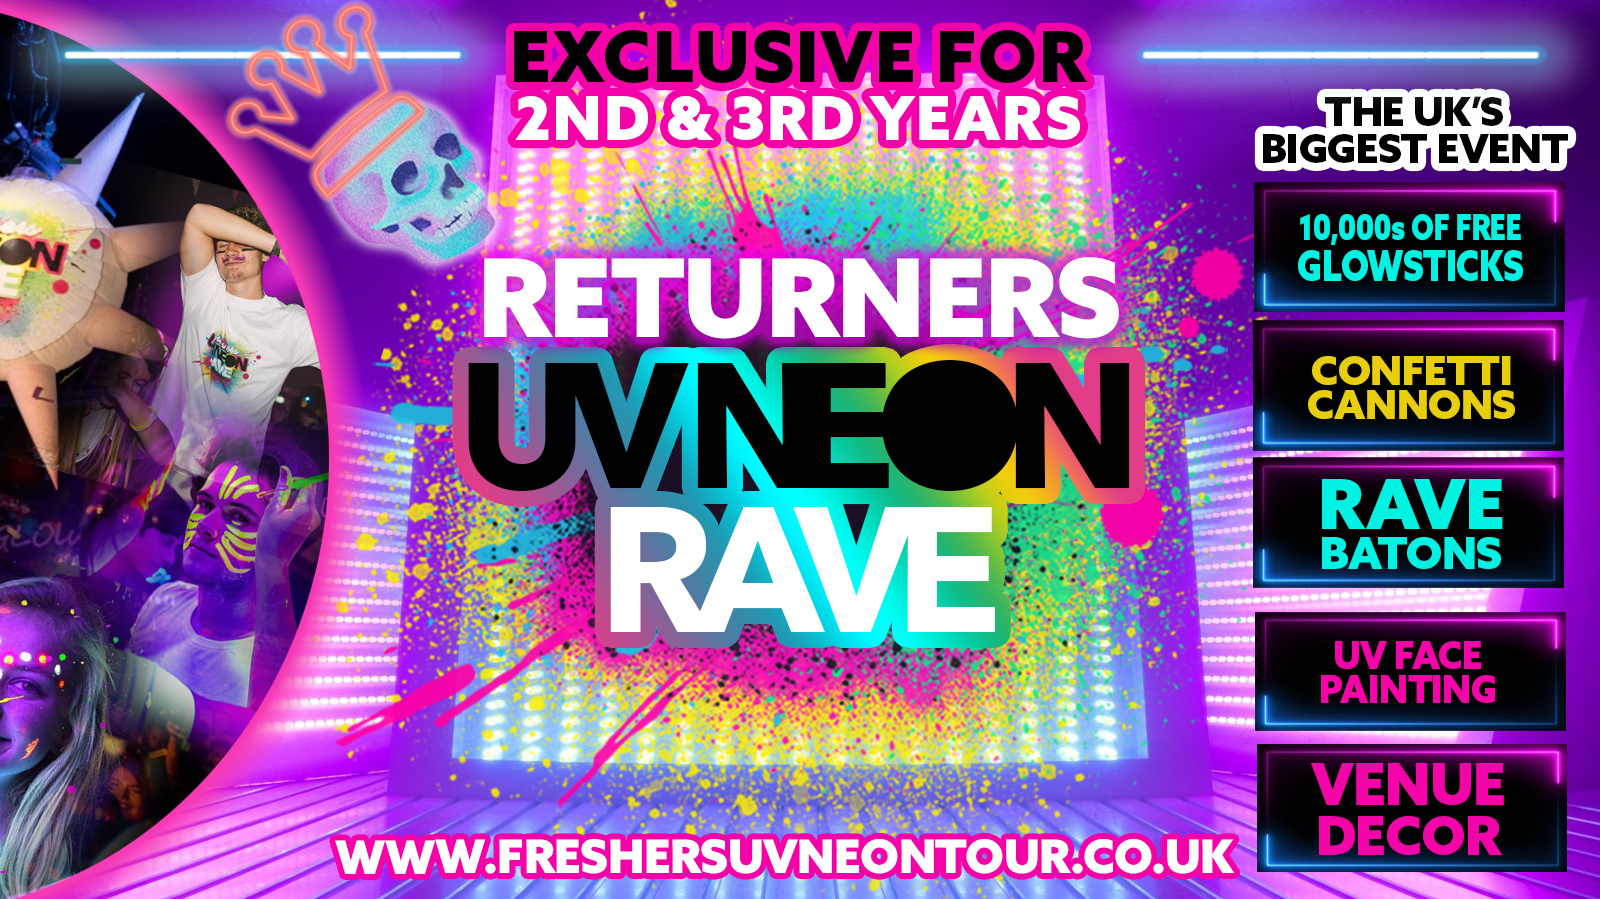 Cambridge Returners UV Neon Rave | Exclusive for 2nd & 3rd Years